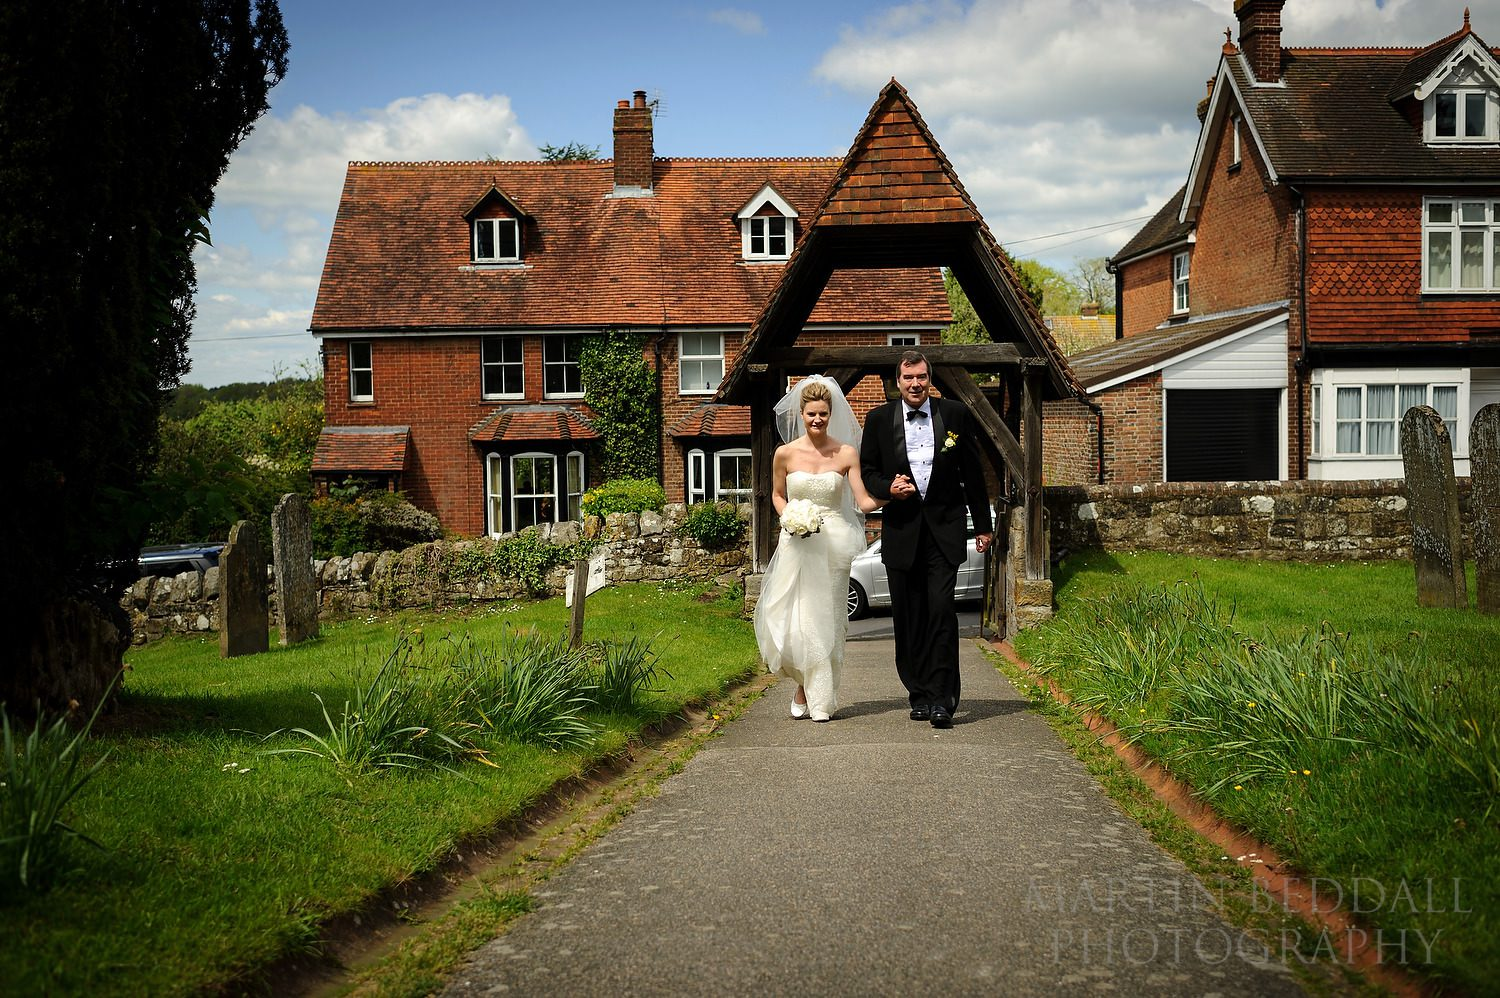 Bride arrives with her father at the church in Rotherfield, East Sussex